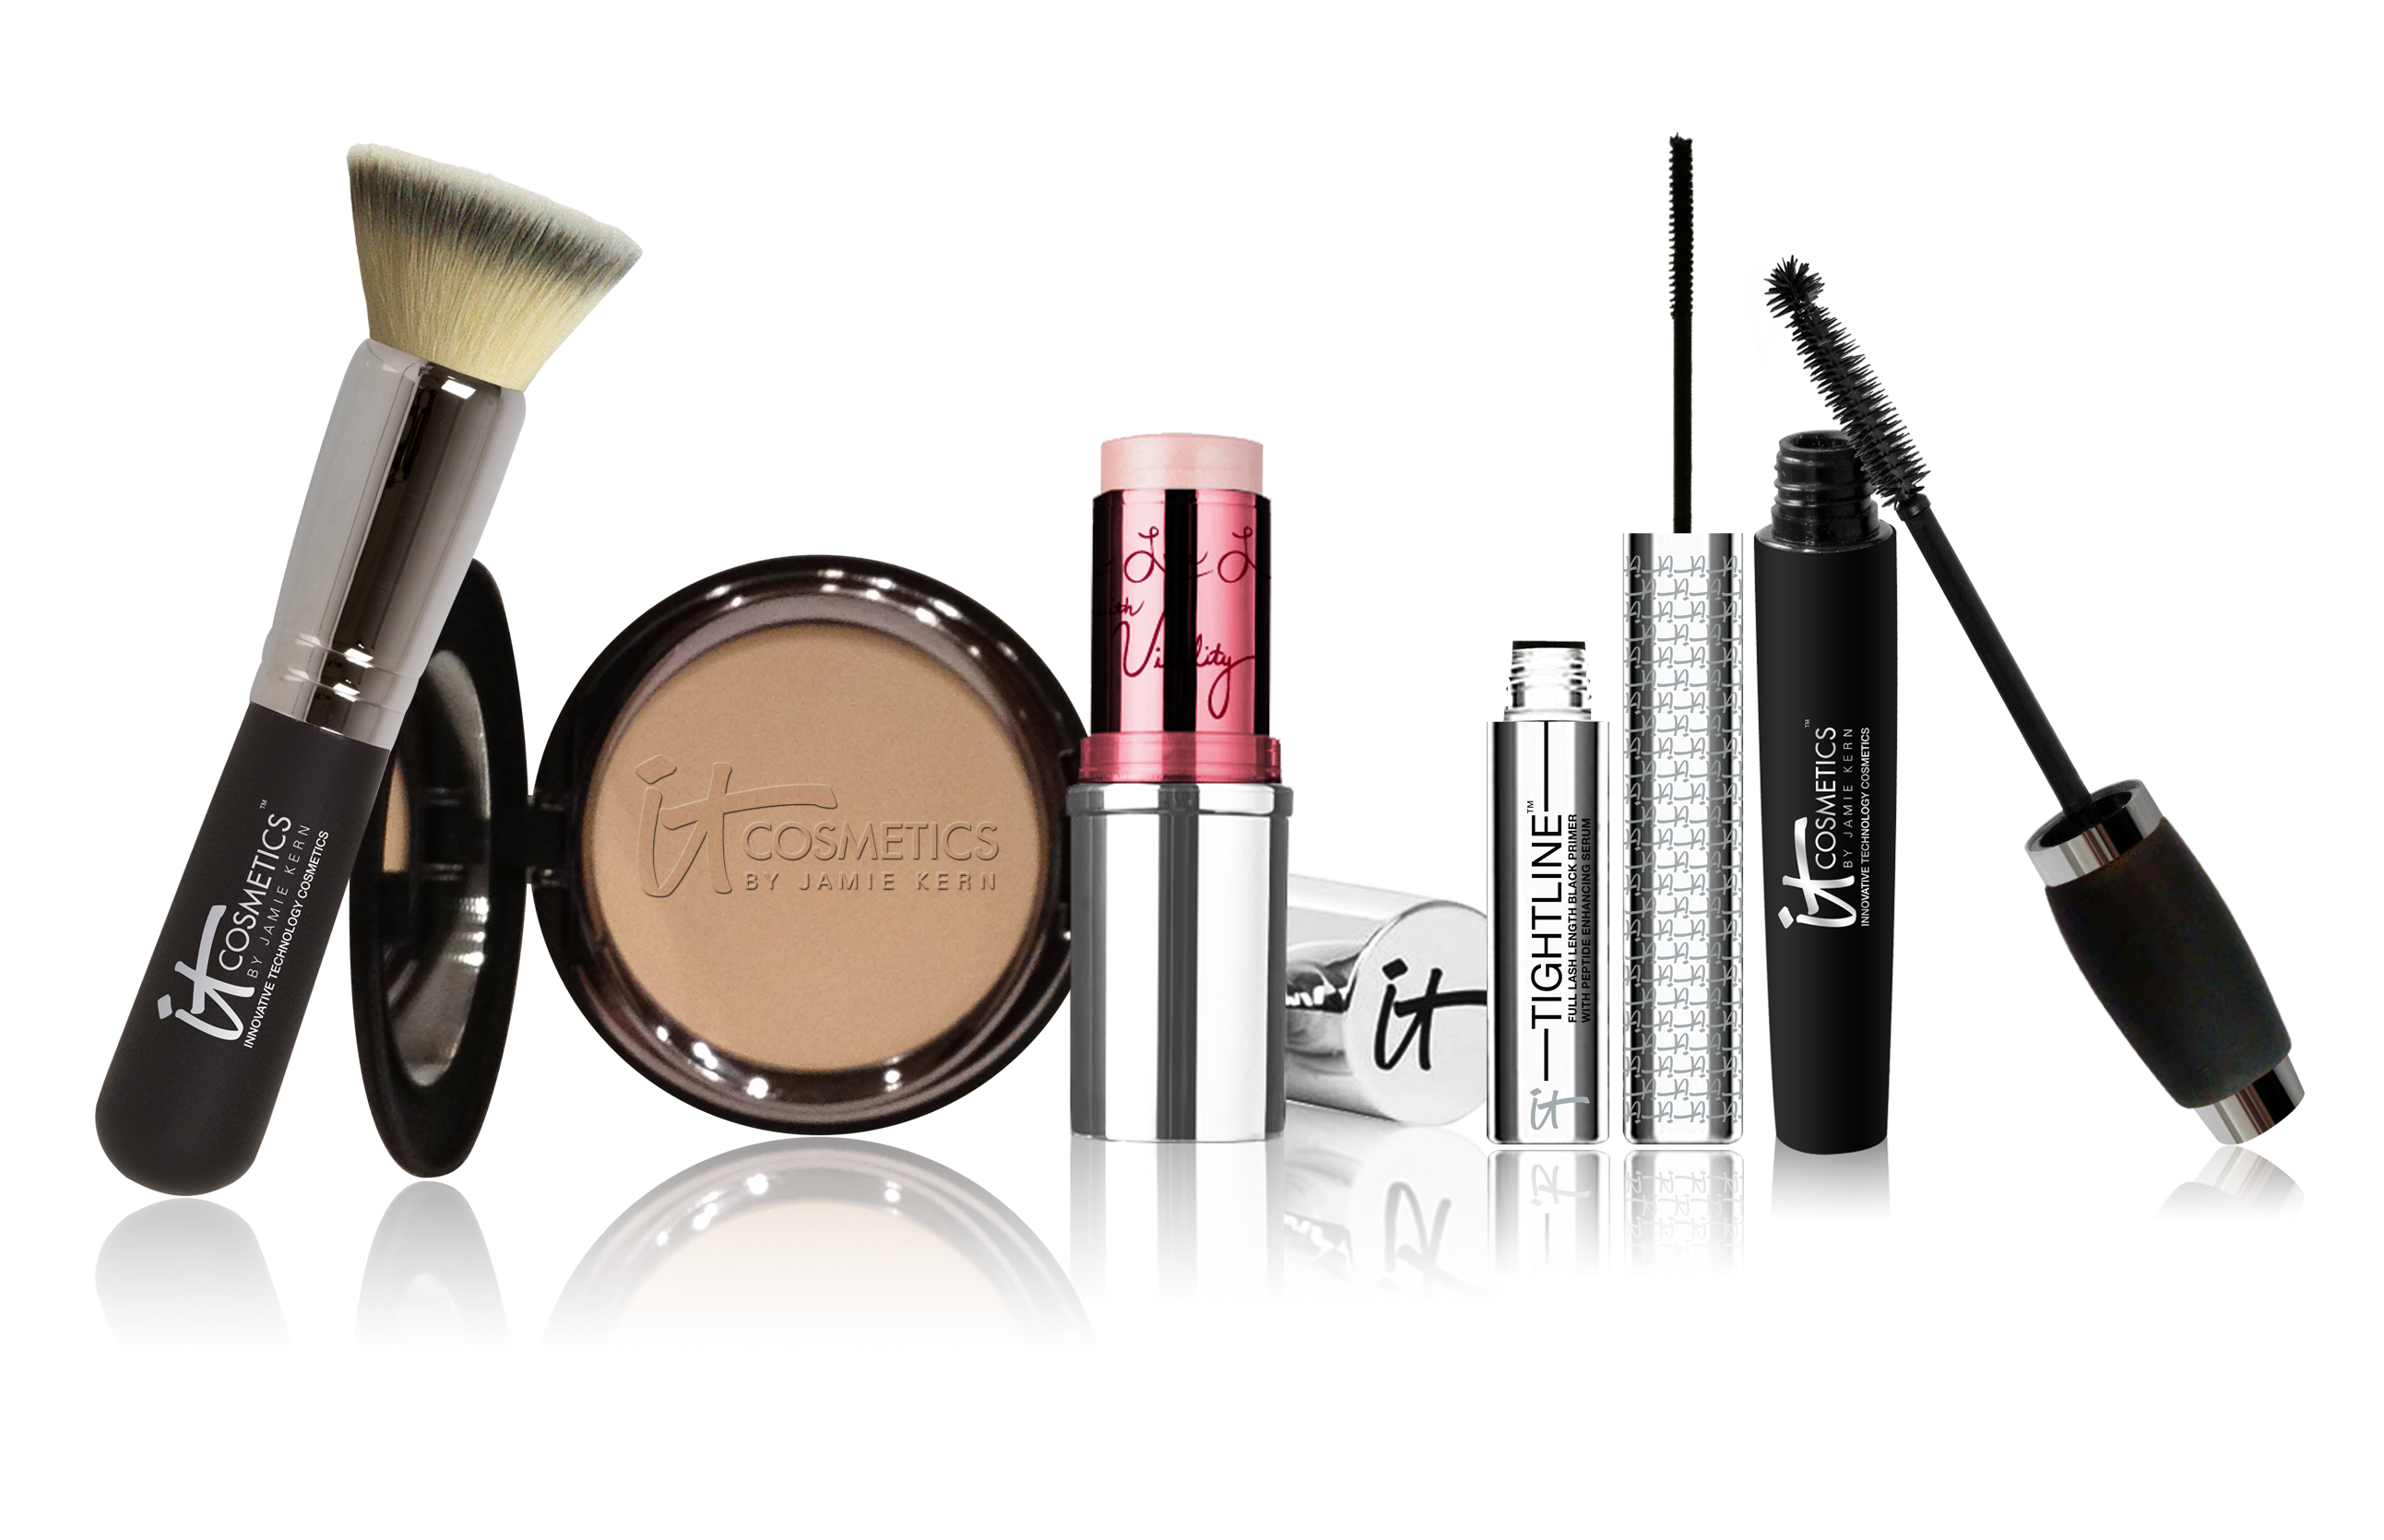 Make Up Png image #7210